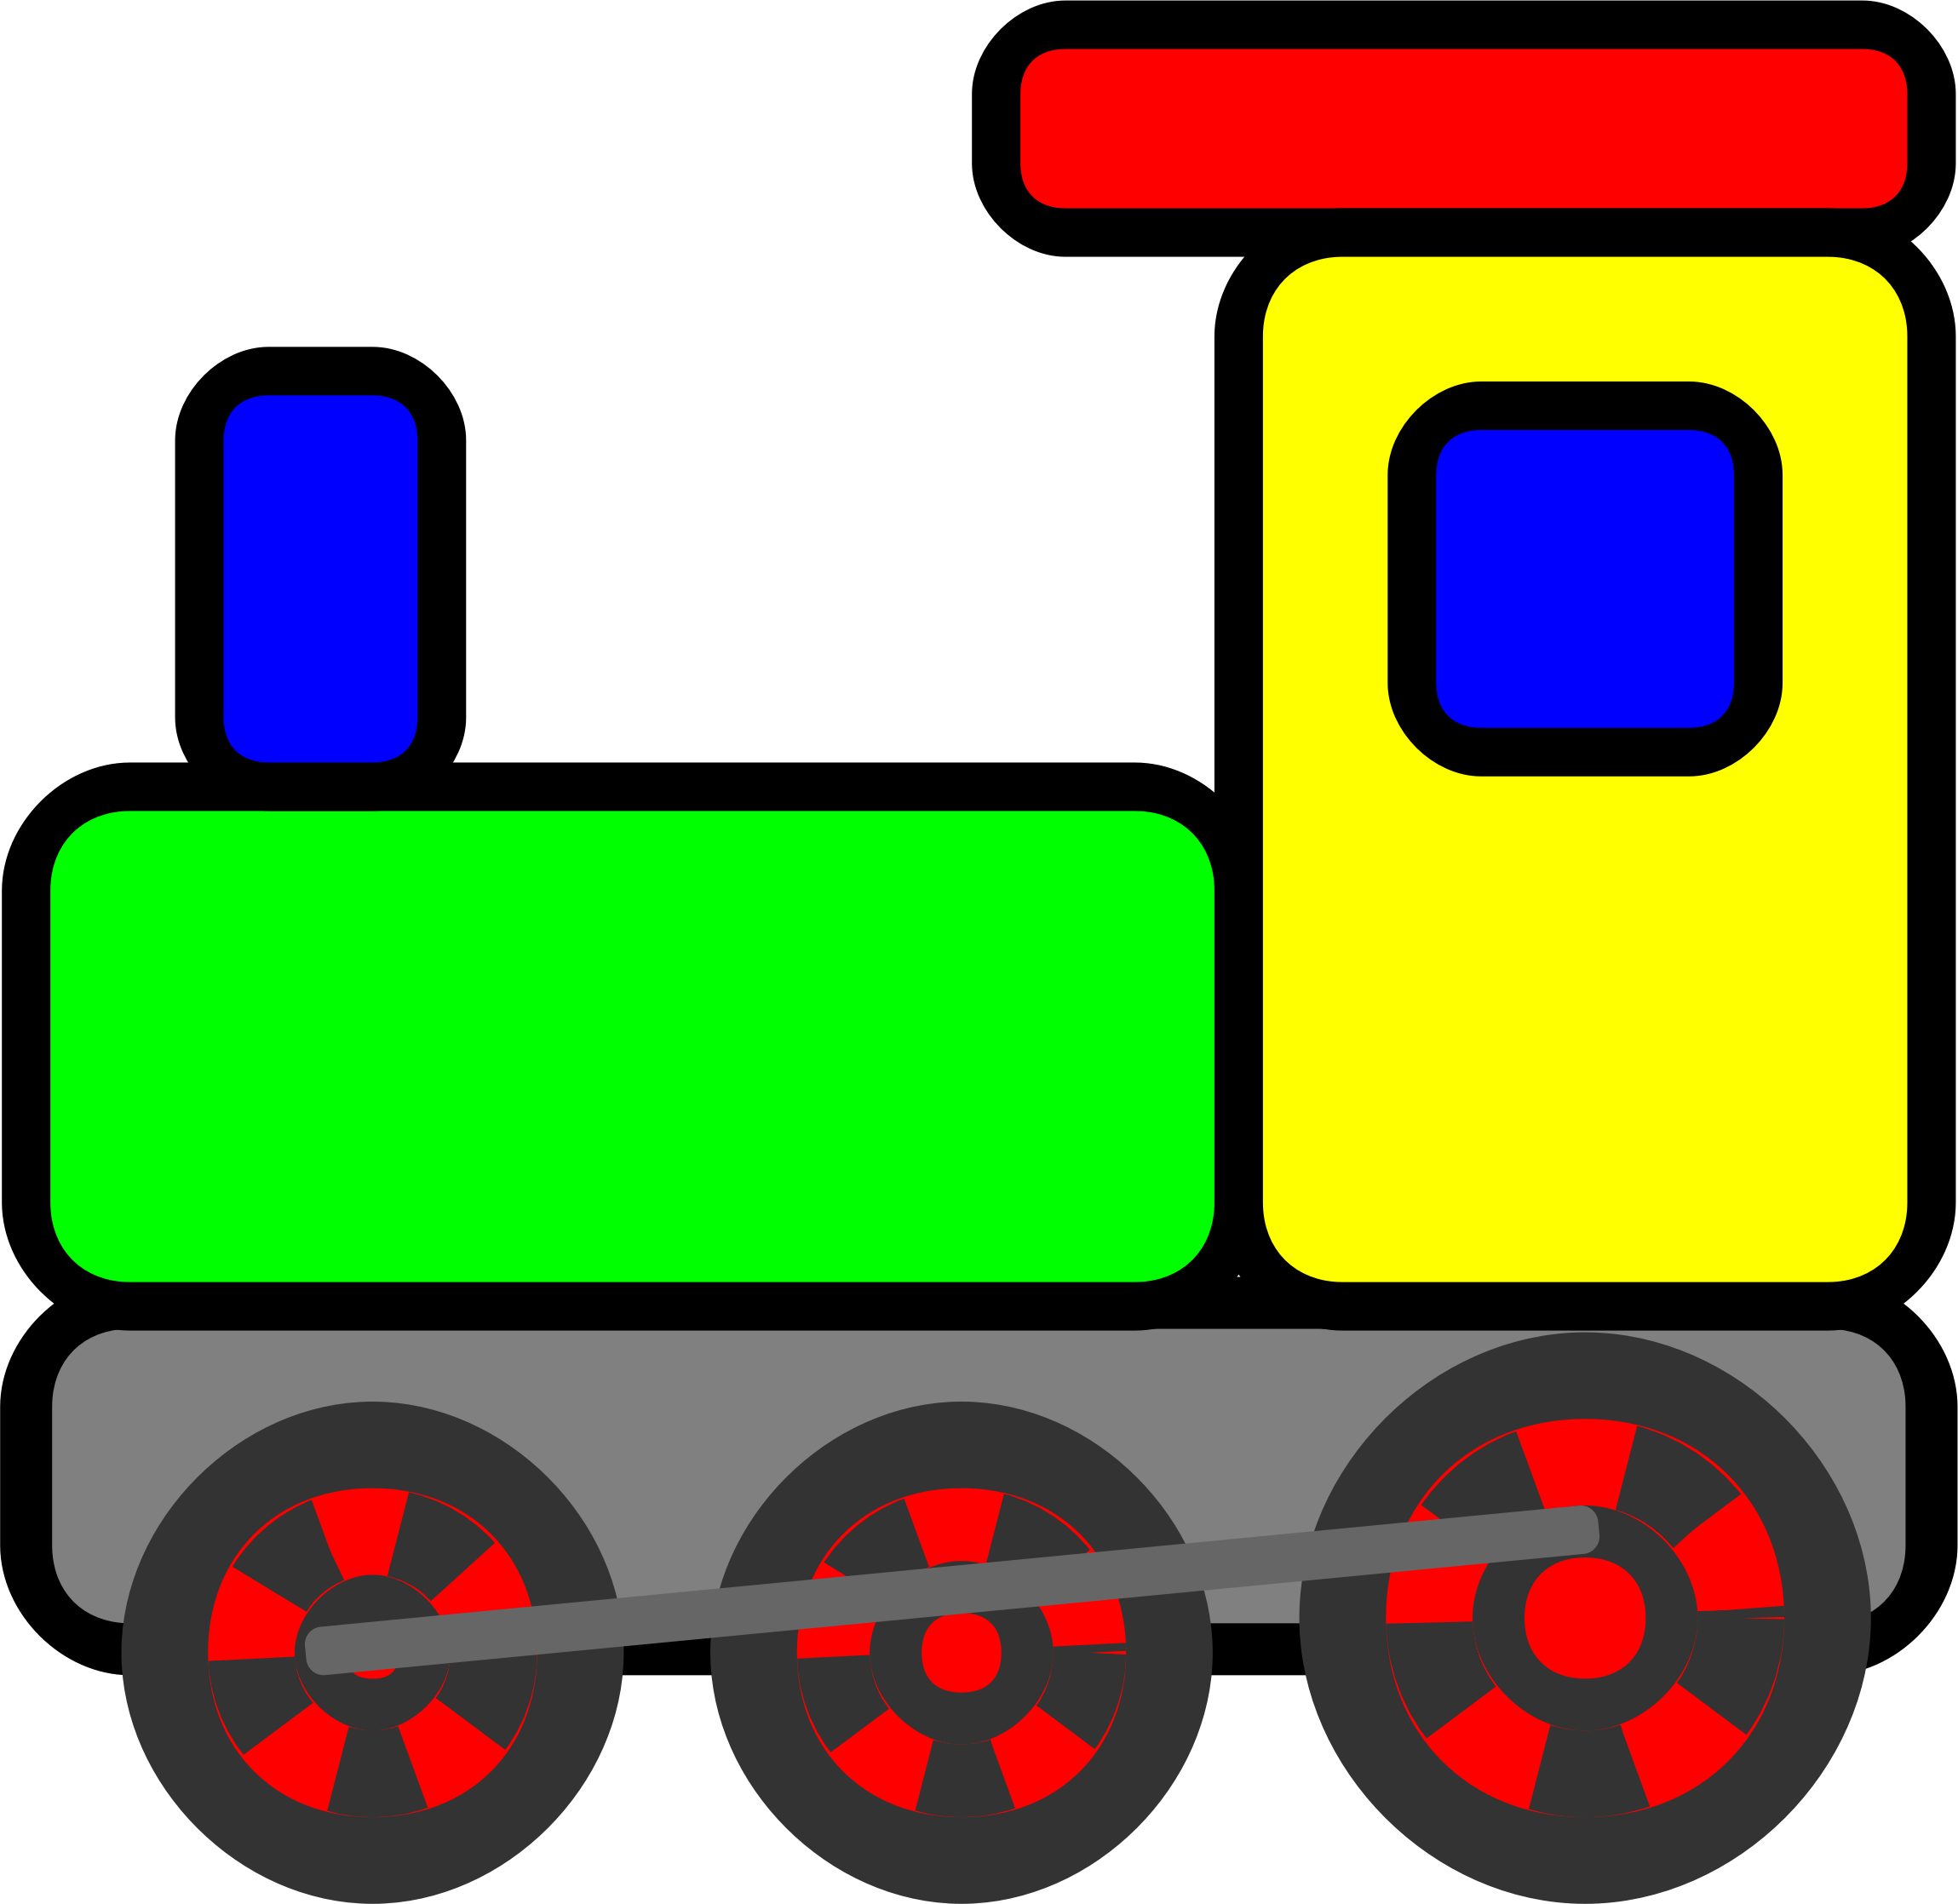 toy train with Toy Trains Pictures on Cuadros besides American Flyer Whistle 568 Parts List Diagram together with Coloriage Eucalyptus as well 10925066666 also Tmnt Movie Toys.